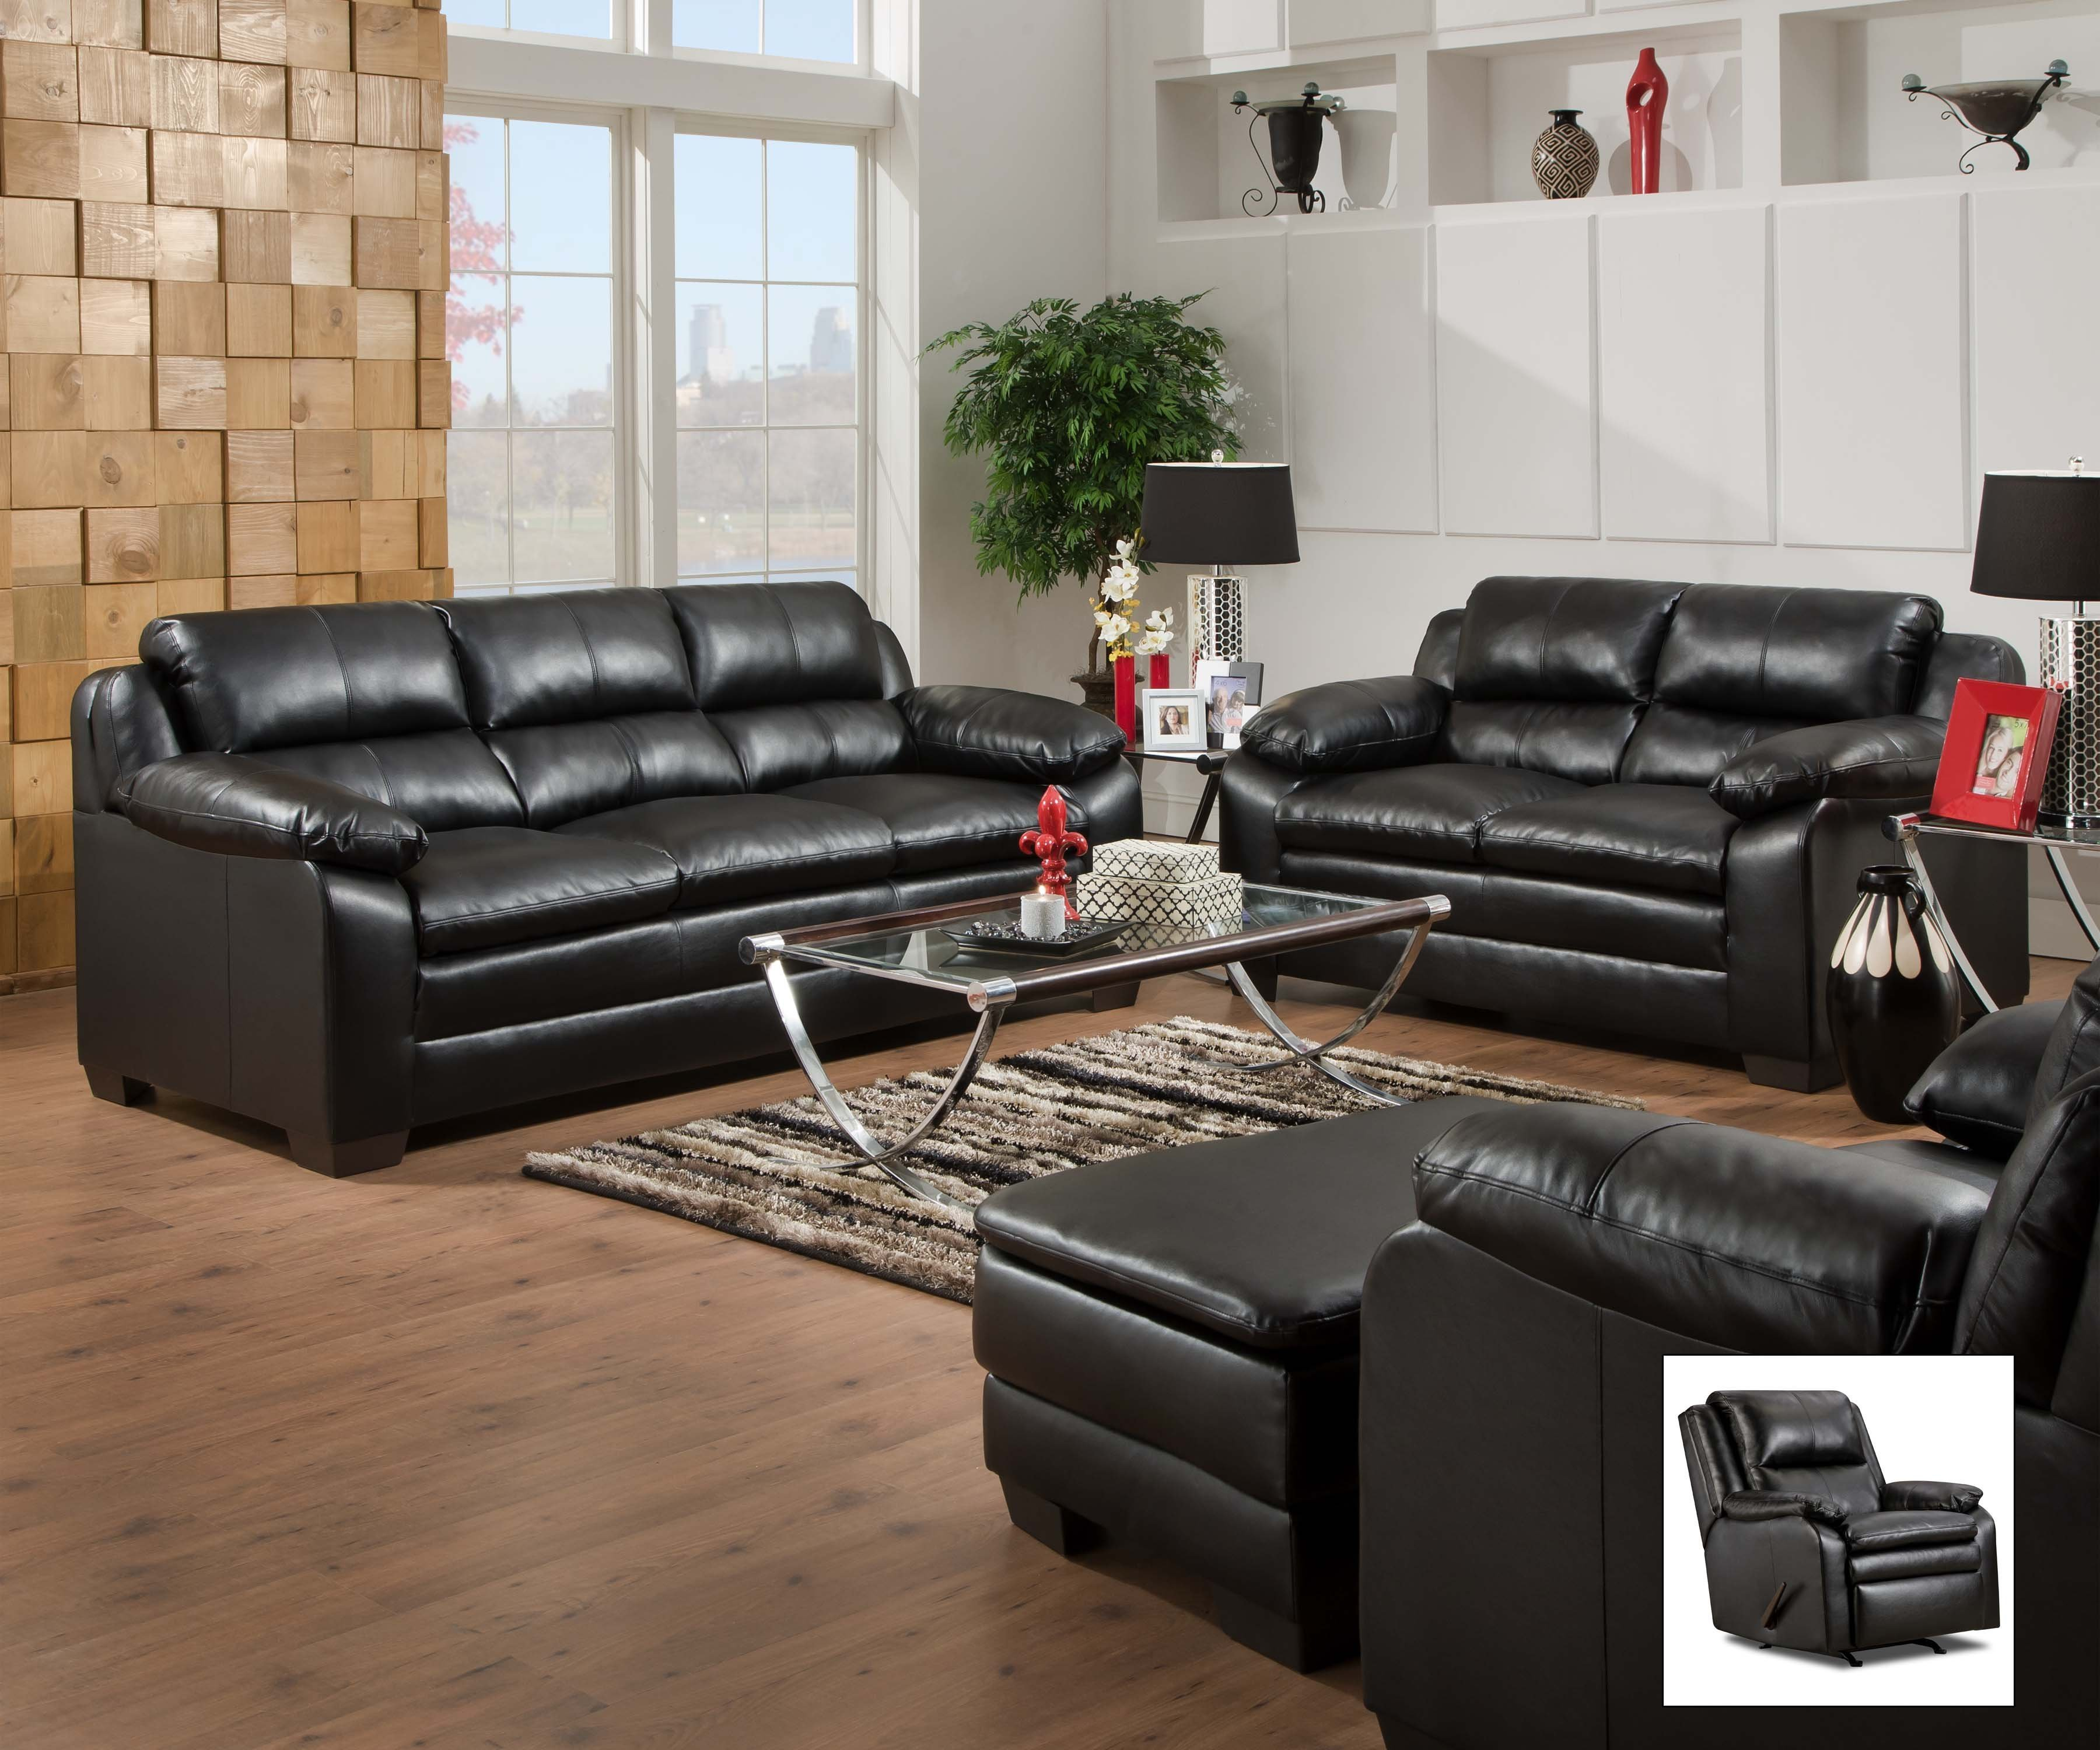 Springfield Furniture Direct – Quality Furniture, Discount Prices